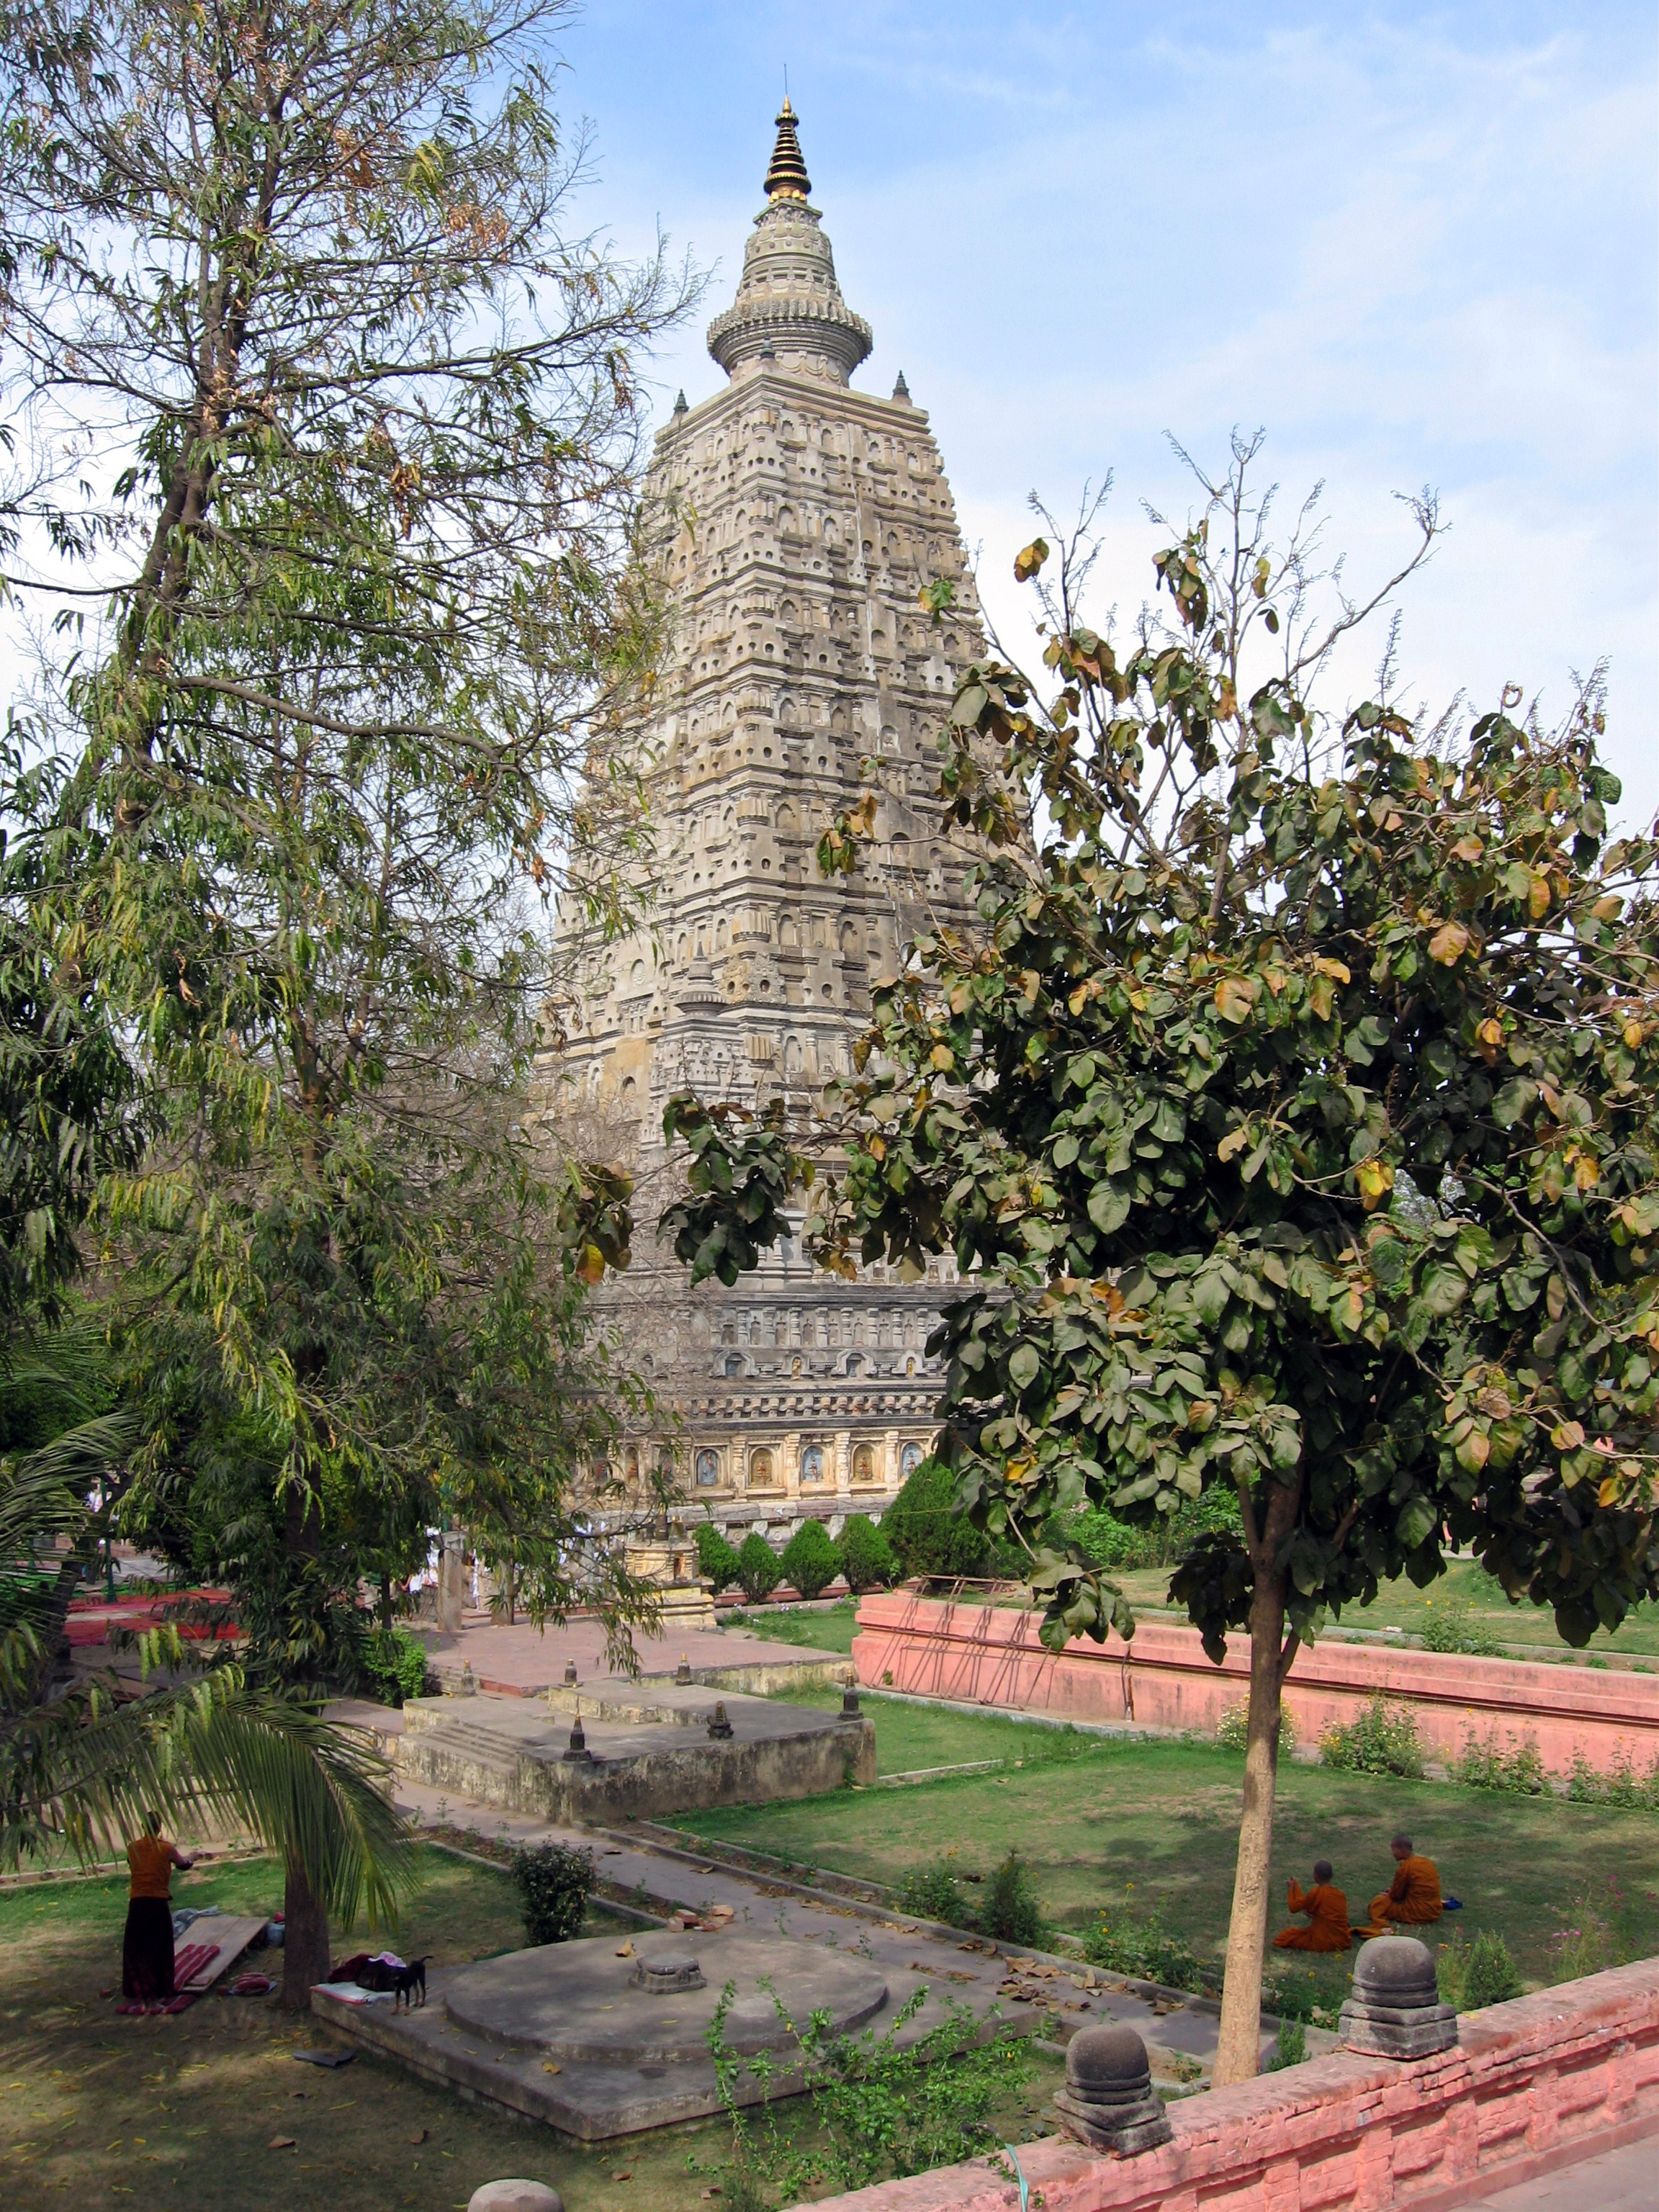 Mahabodhi Temple, Bodhgaya, Bihar, India, view from southwest